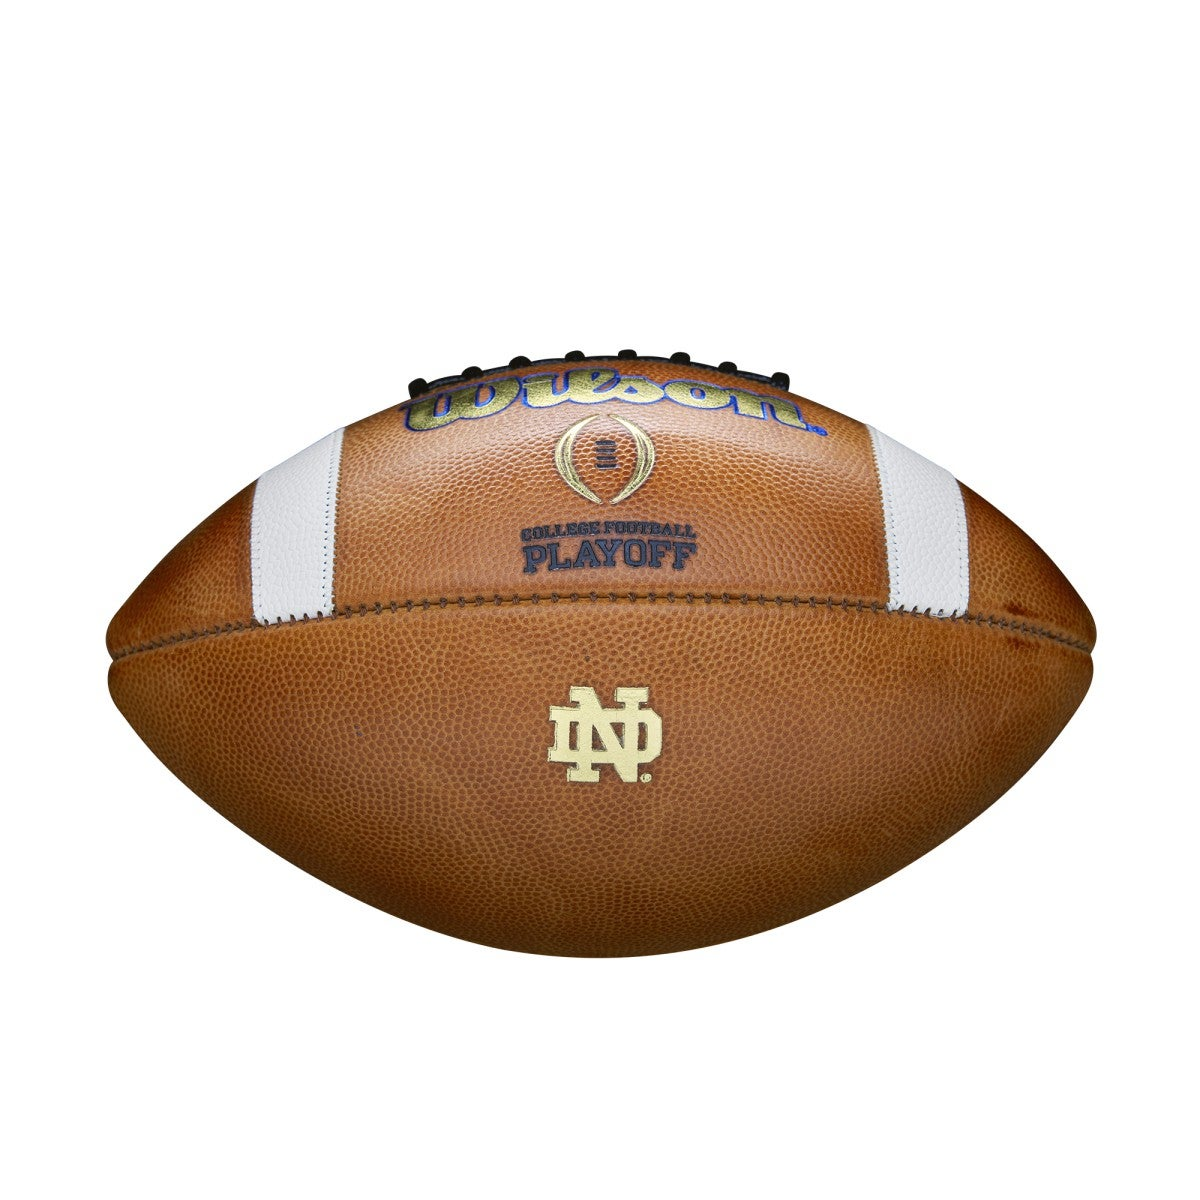 ? COLLEGE FOOTBALL PLAYOFF GAME BALL - OFFICIAL - NOTRE DAME